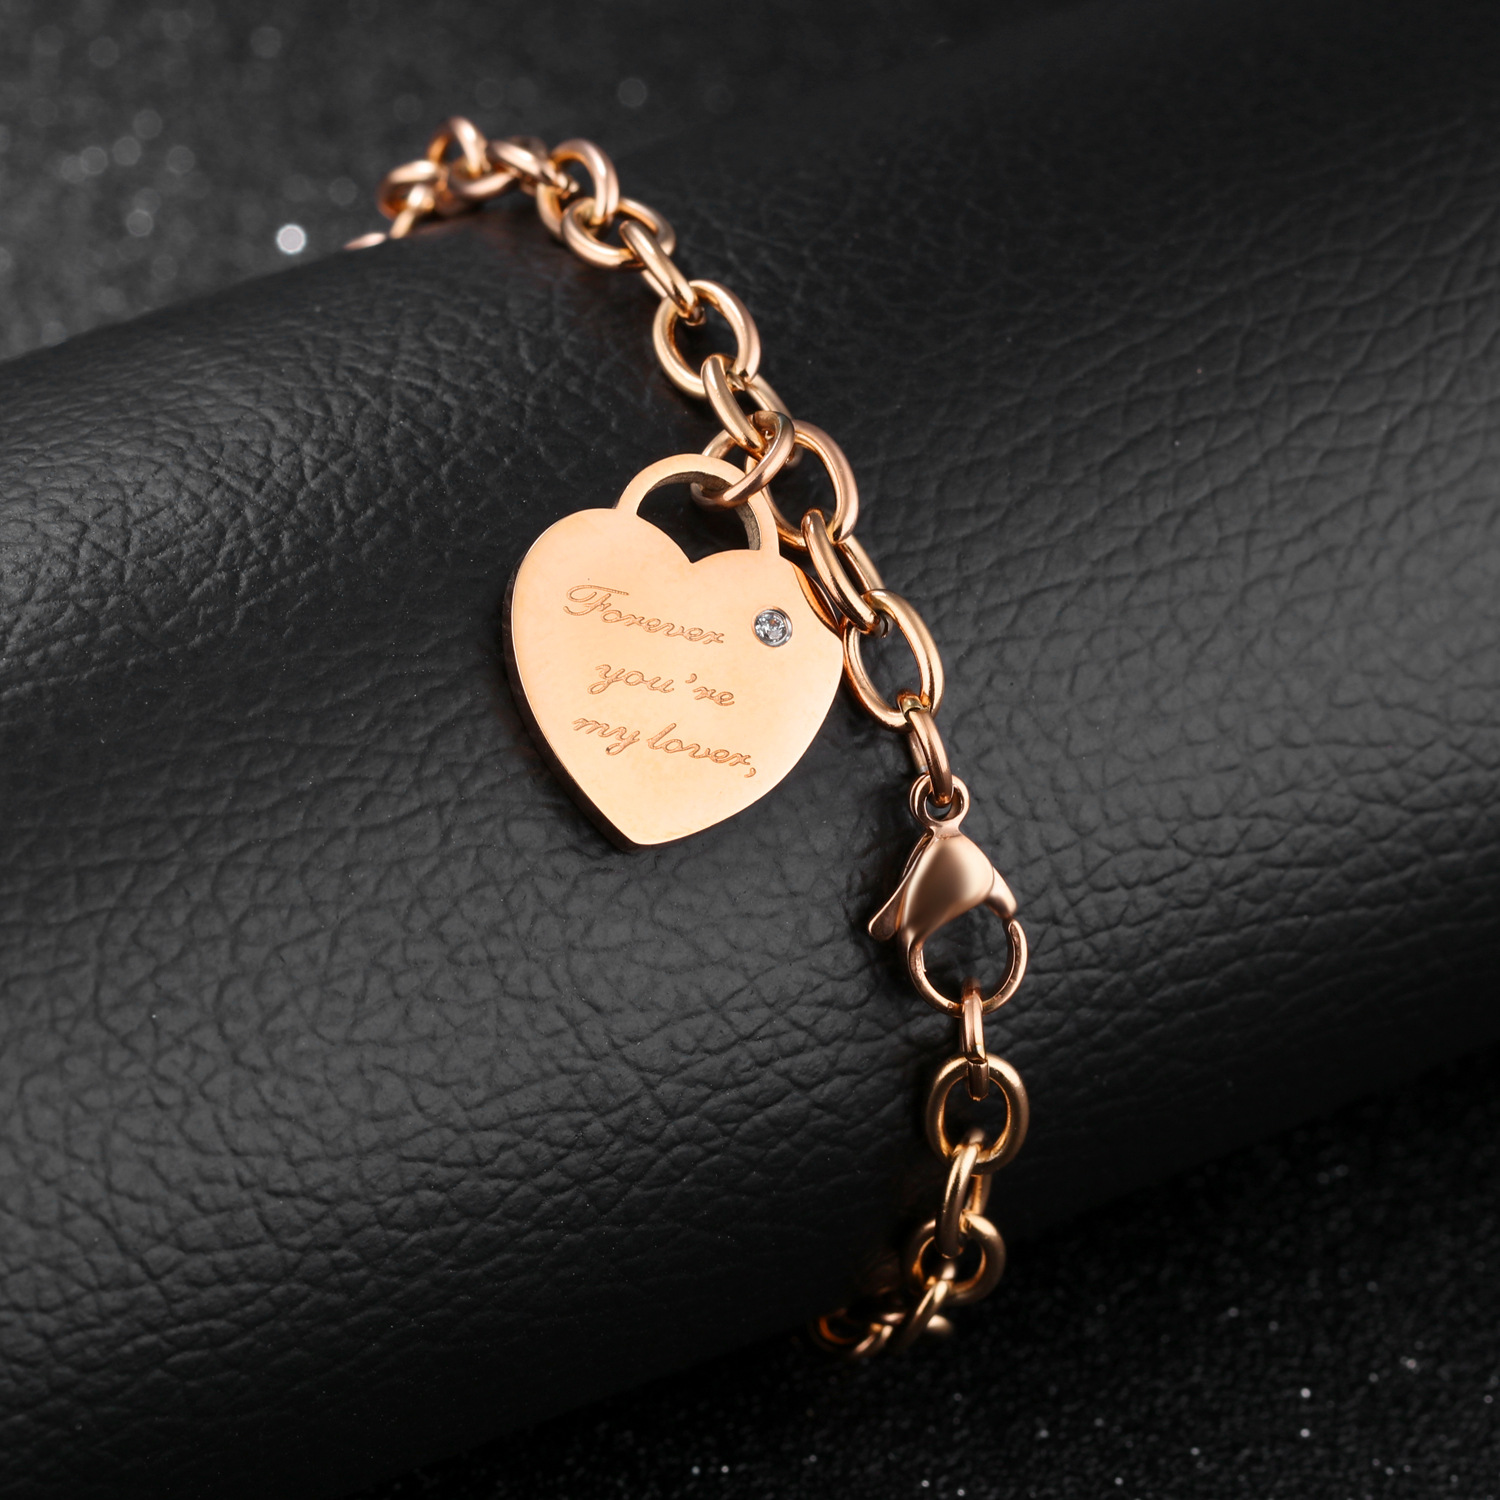 SILVER PLATED MADE WITH LOVE HEART LINK CHARM BRACELET BANGLE FREE UK POST HB